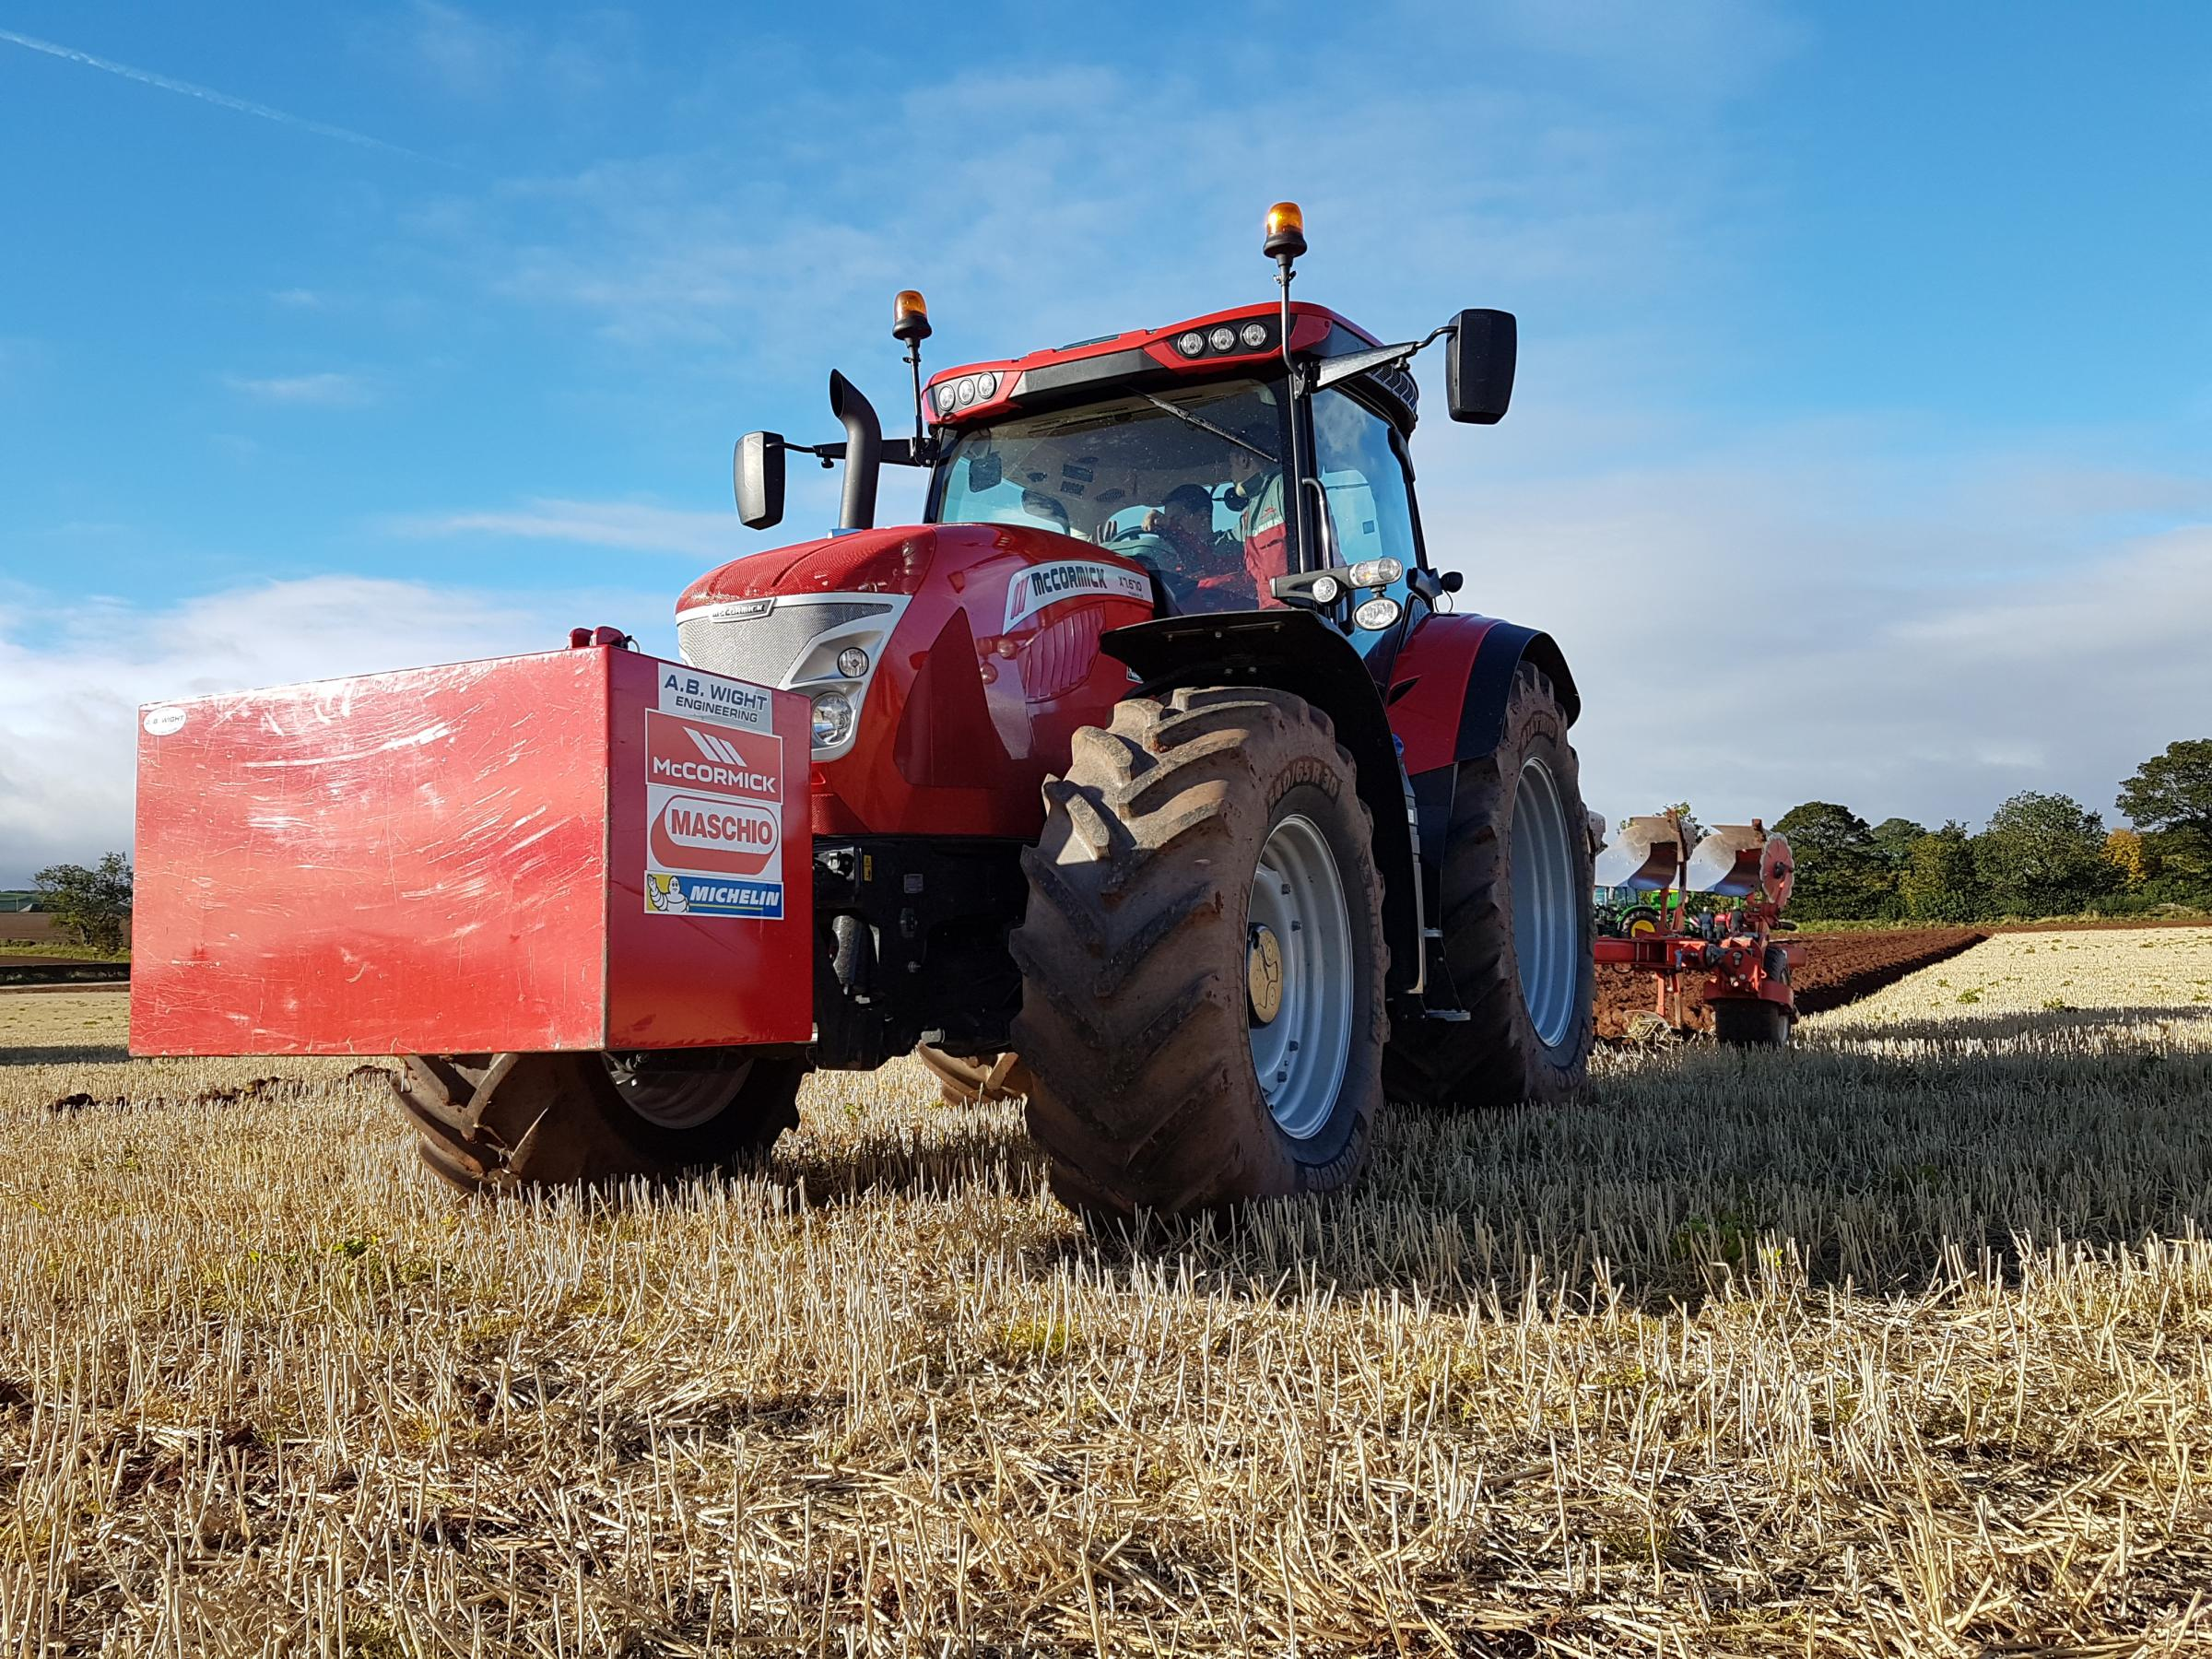 The new 206/225hp McCormick X7.690 P6-Drive at the Tillage-Live 2018 event working with a Maschio Unico plough also seen at the event for the first time